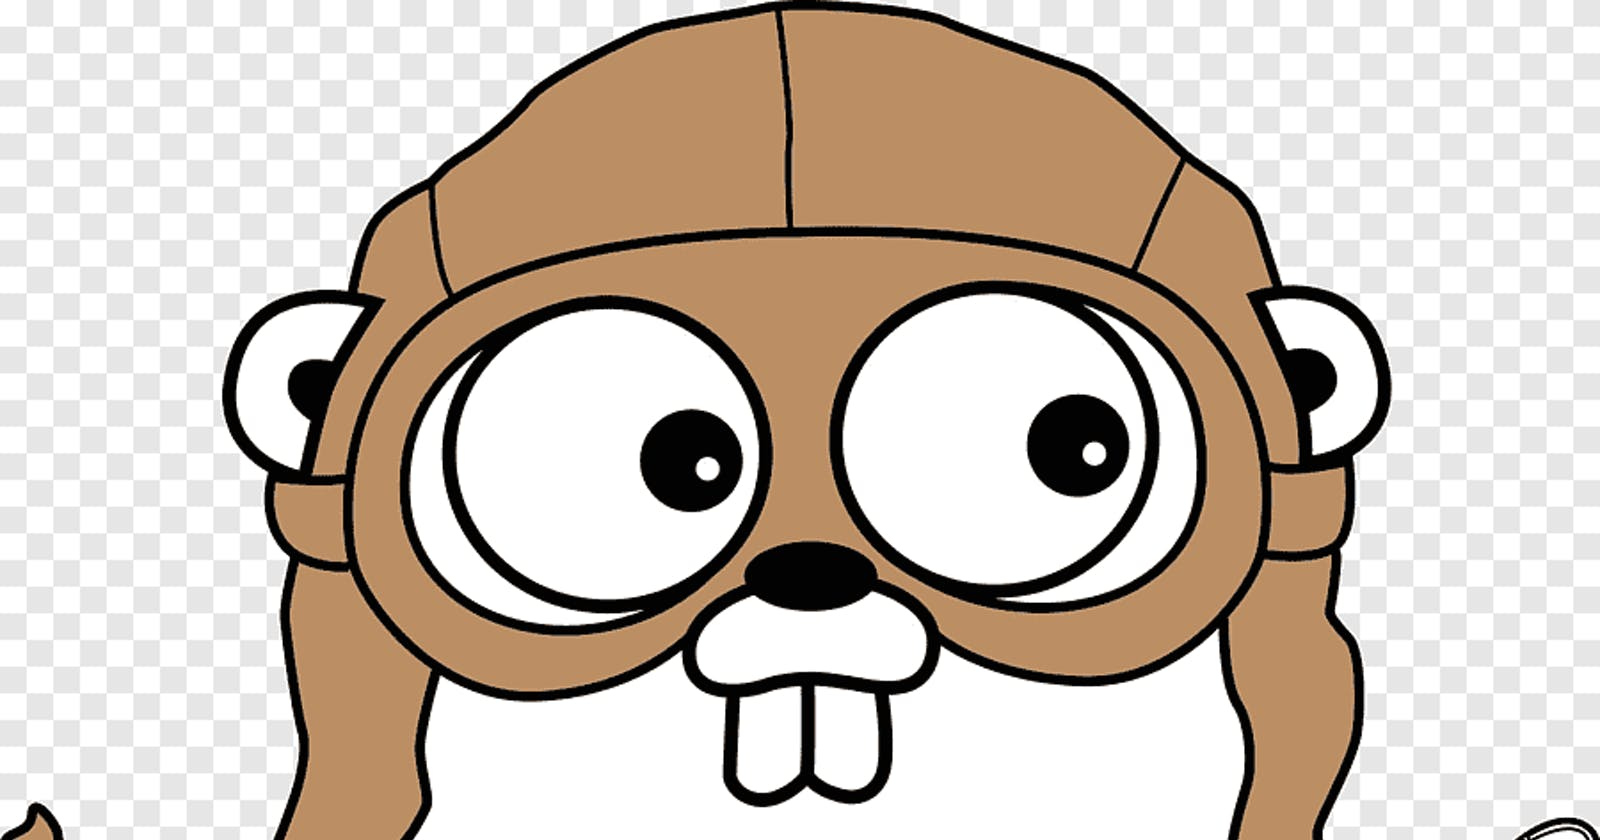 Hello world in Golang